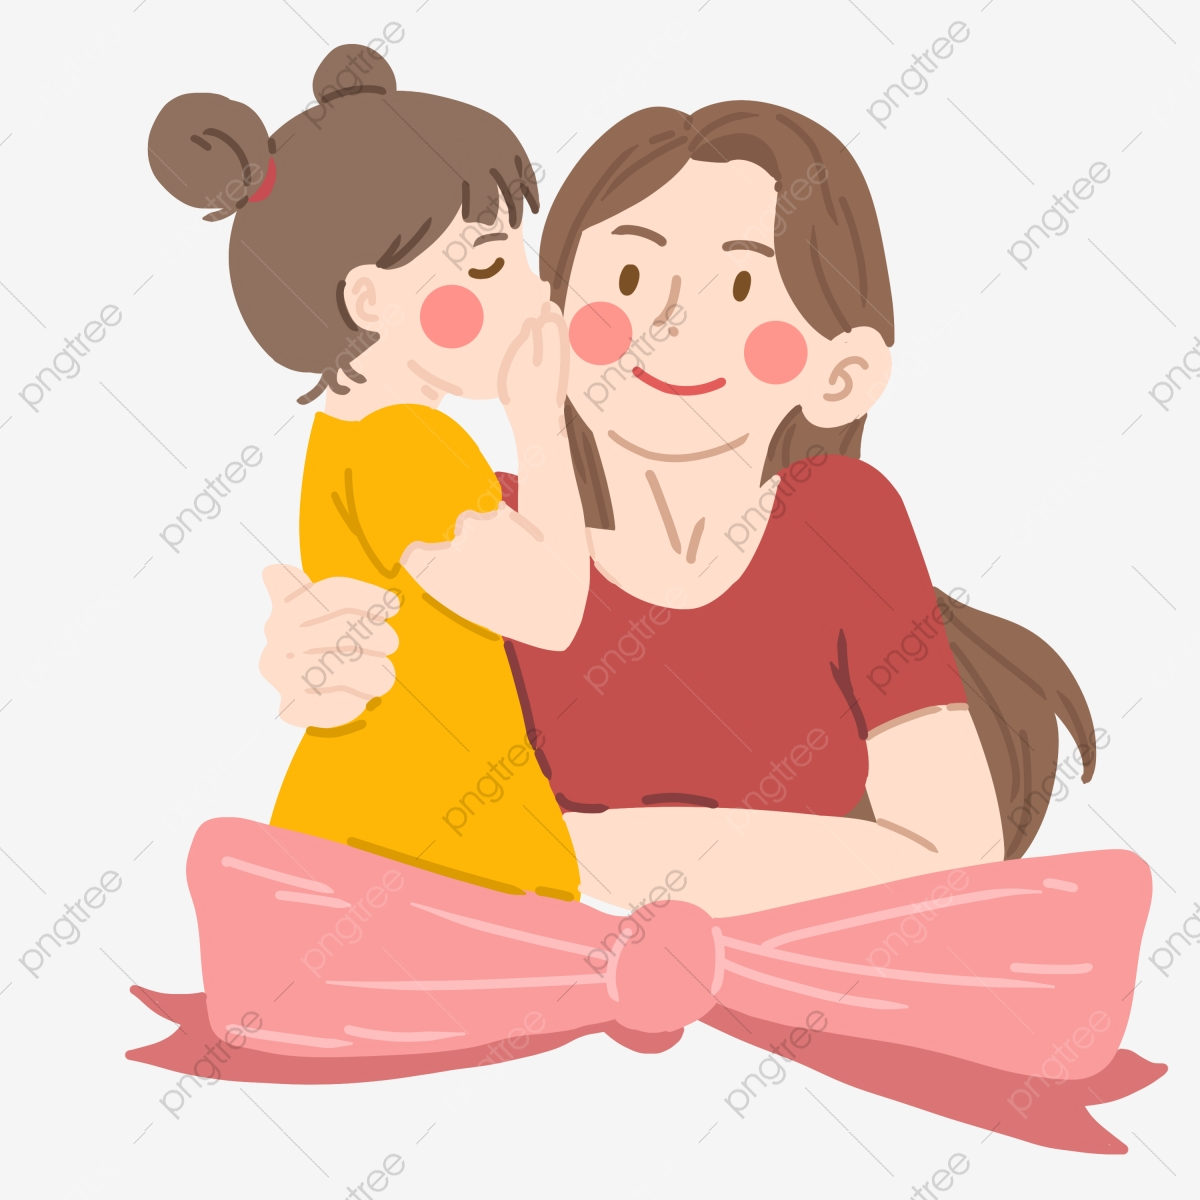 Mother And Baby Hand Drawn Illustration Pink Bow Little Girl Whispering Beautiful Mother Cartoon Character Illustration Red Hair Band Daughter Png Transparent Clipart Image And Psd File For Free Download